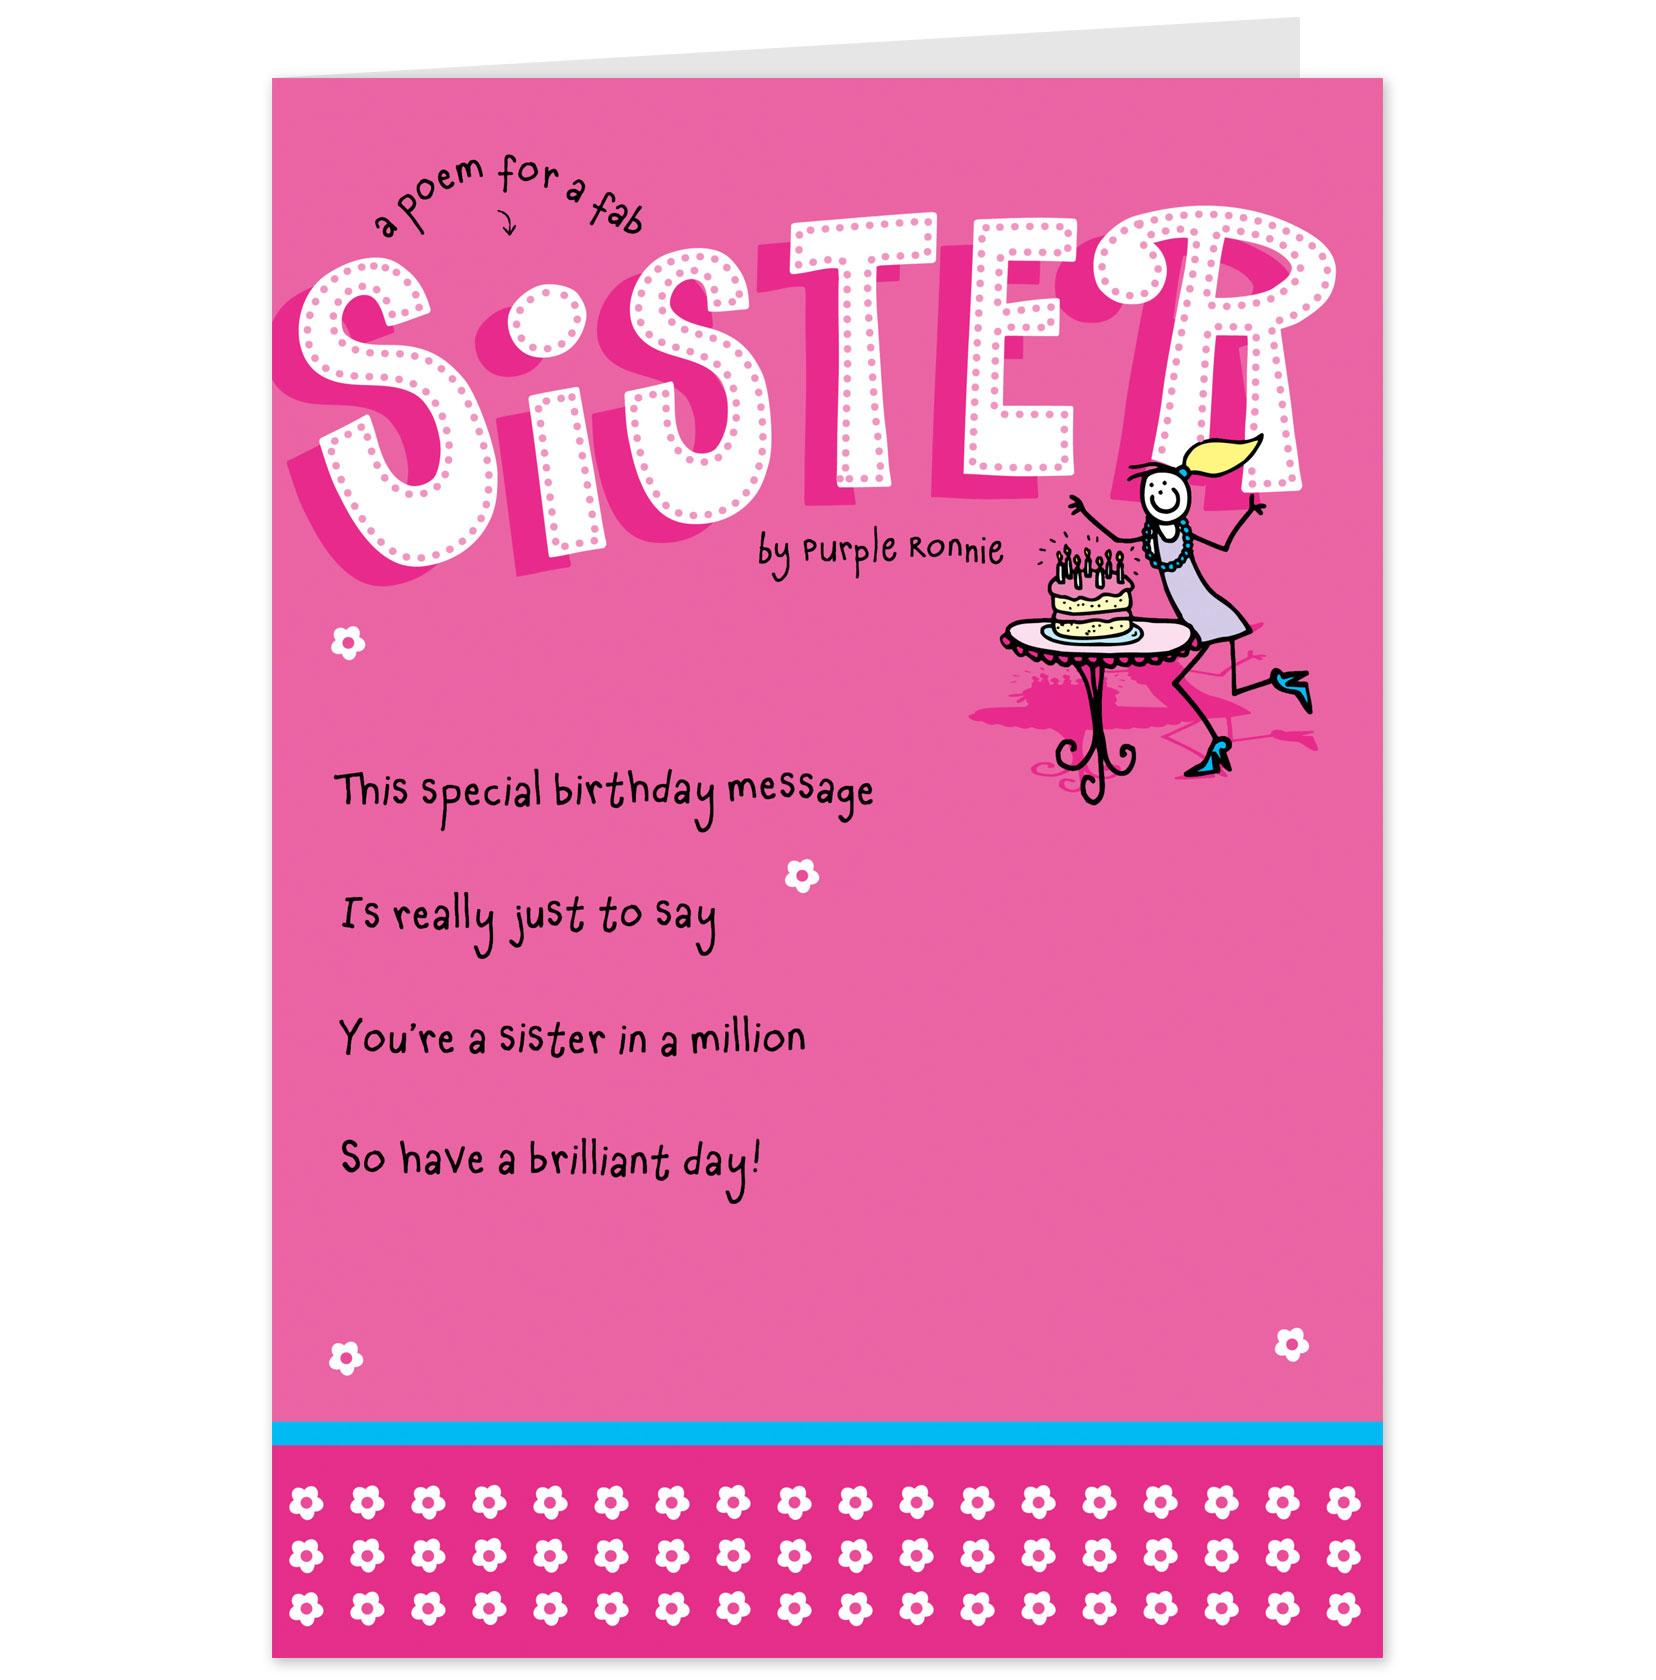 Happy Birthday Universe Quotes: Funny Sister Quotes. QuotesGram